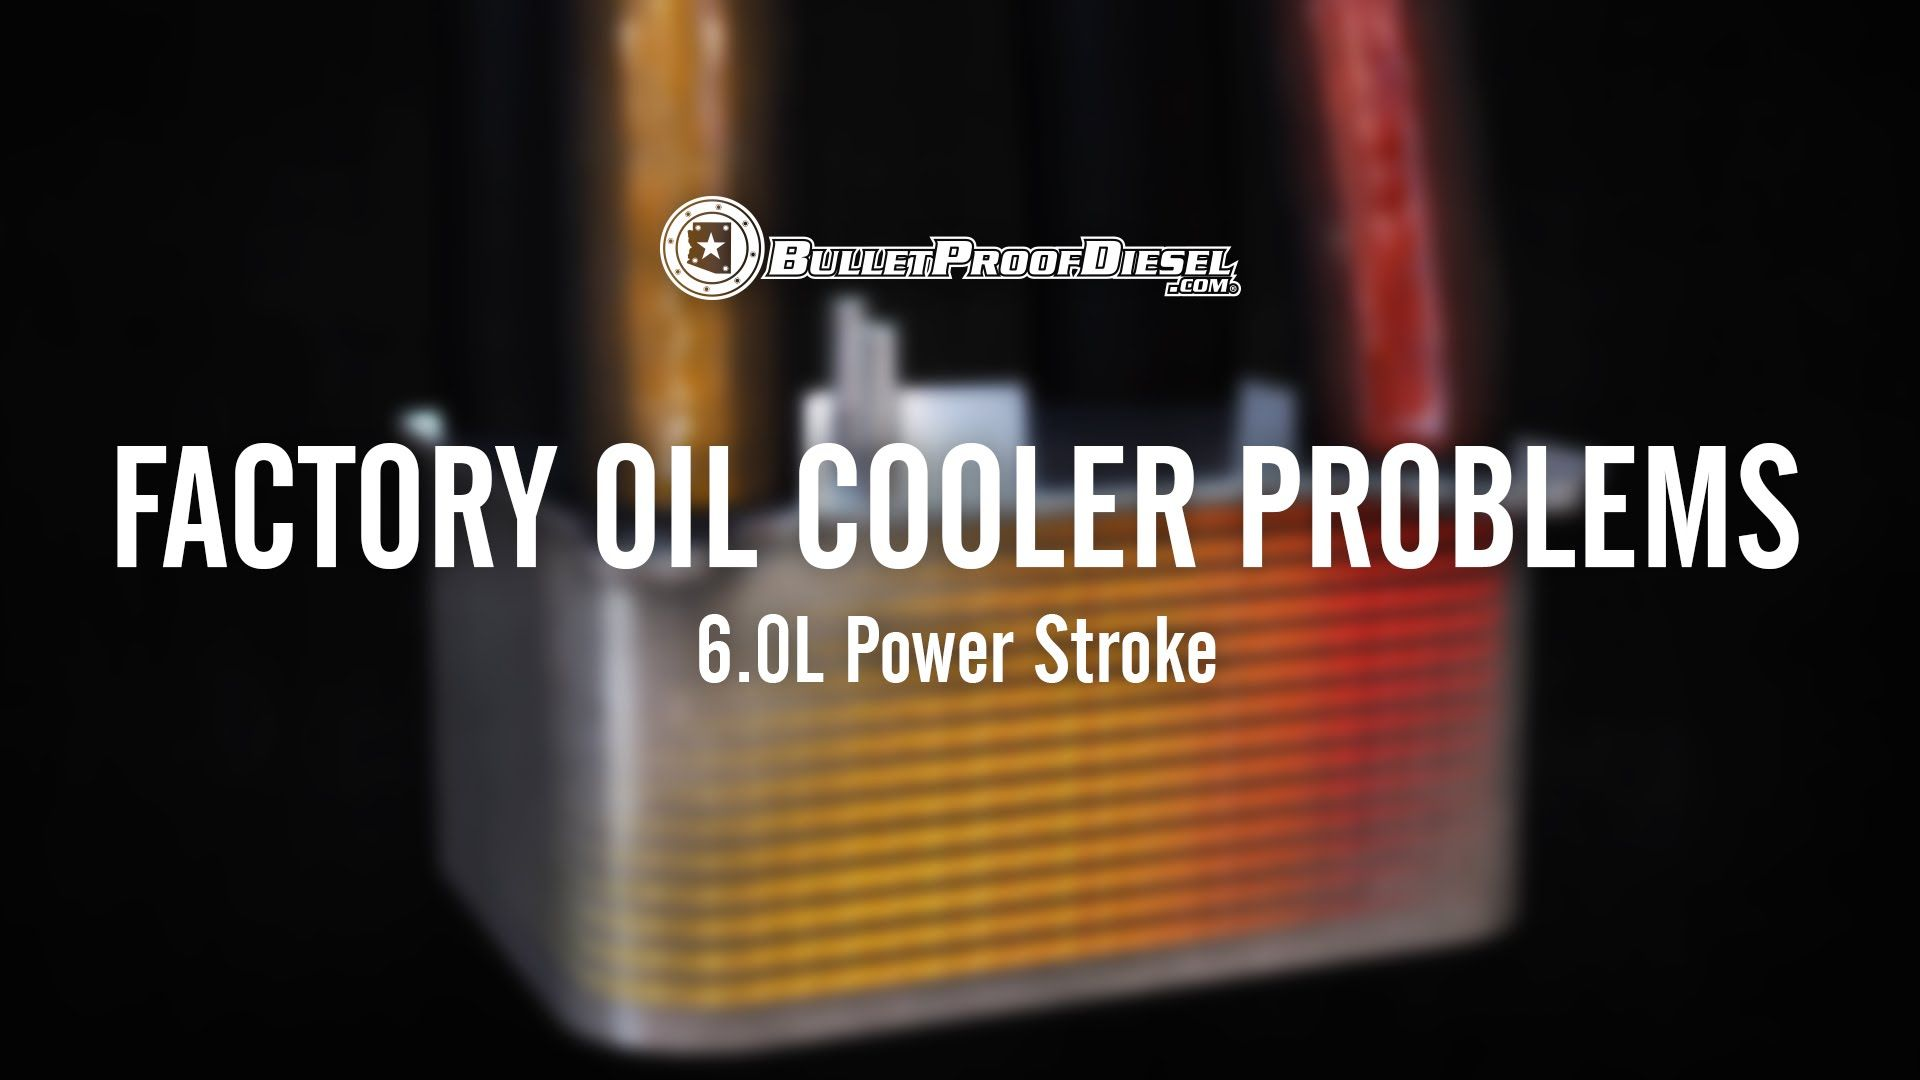 Problems with the Factory Engine Oil Cooler; 6.0L Power